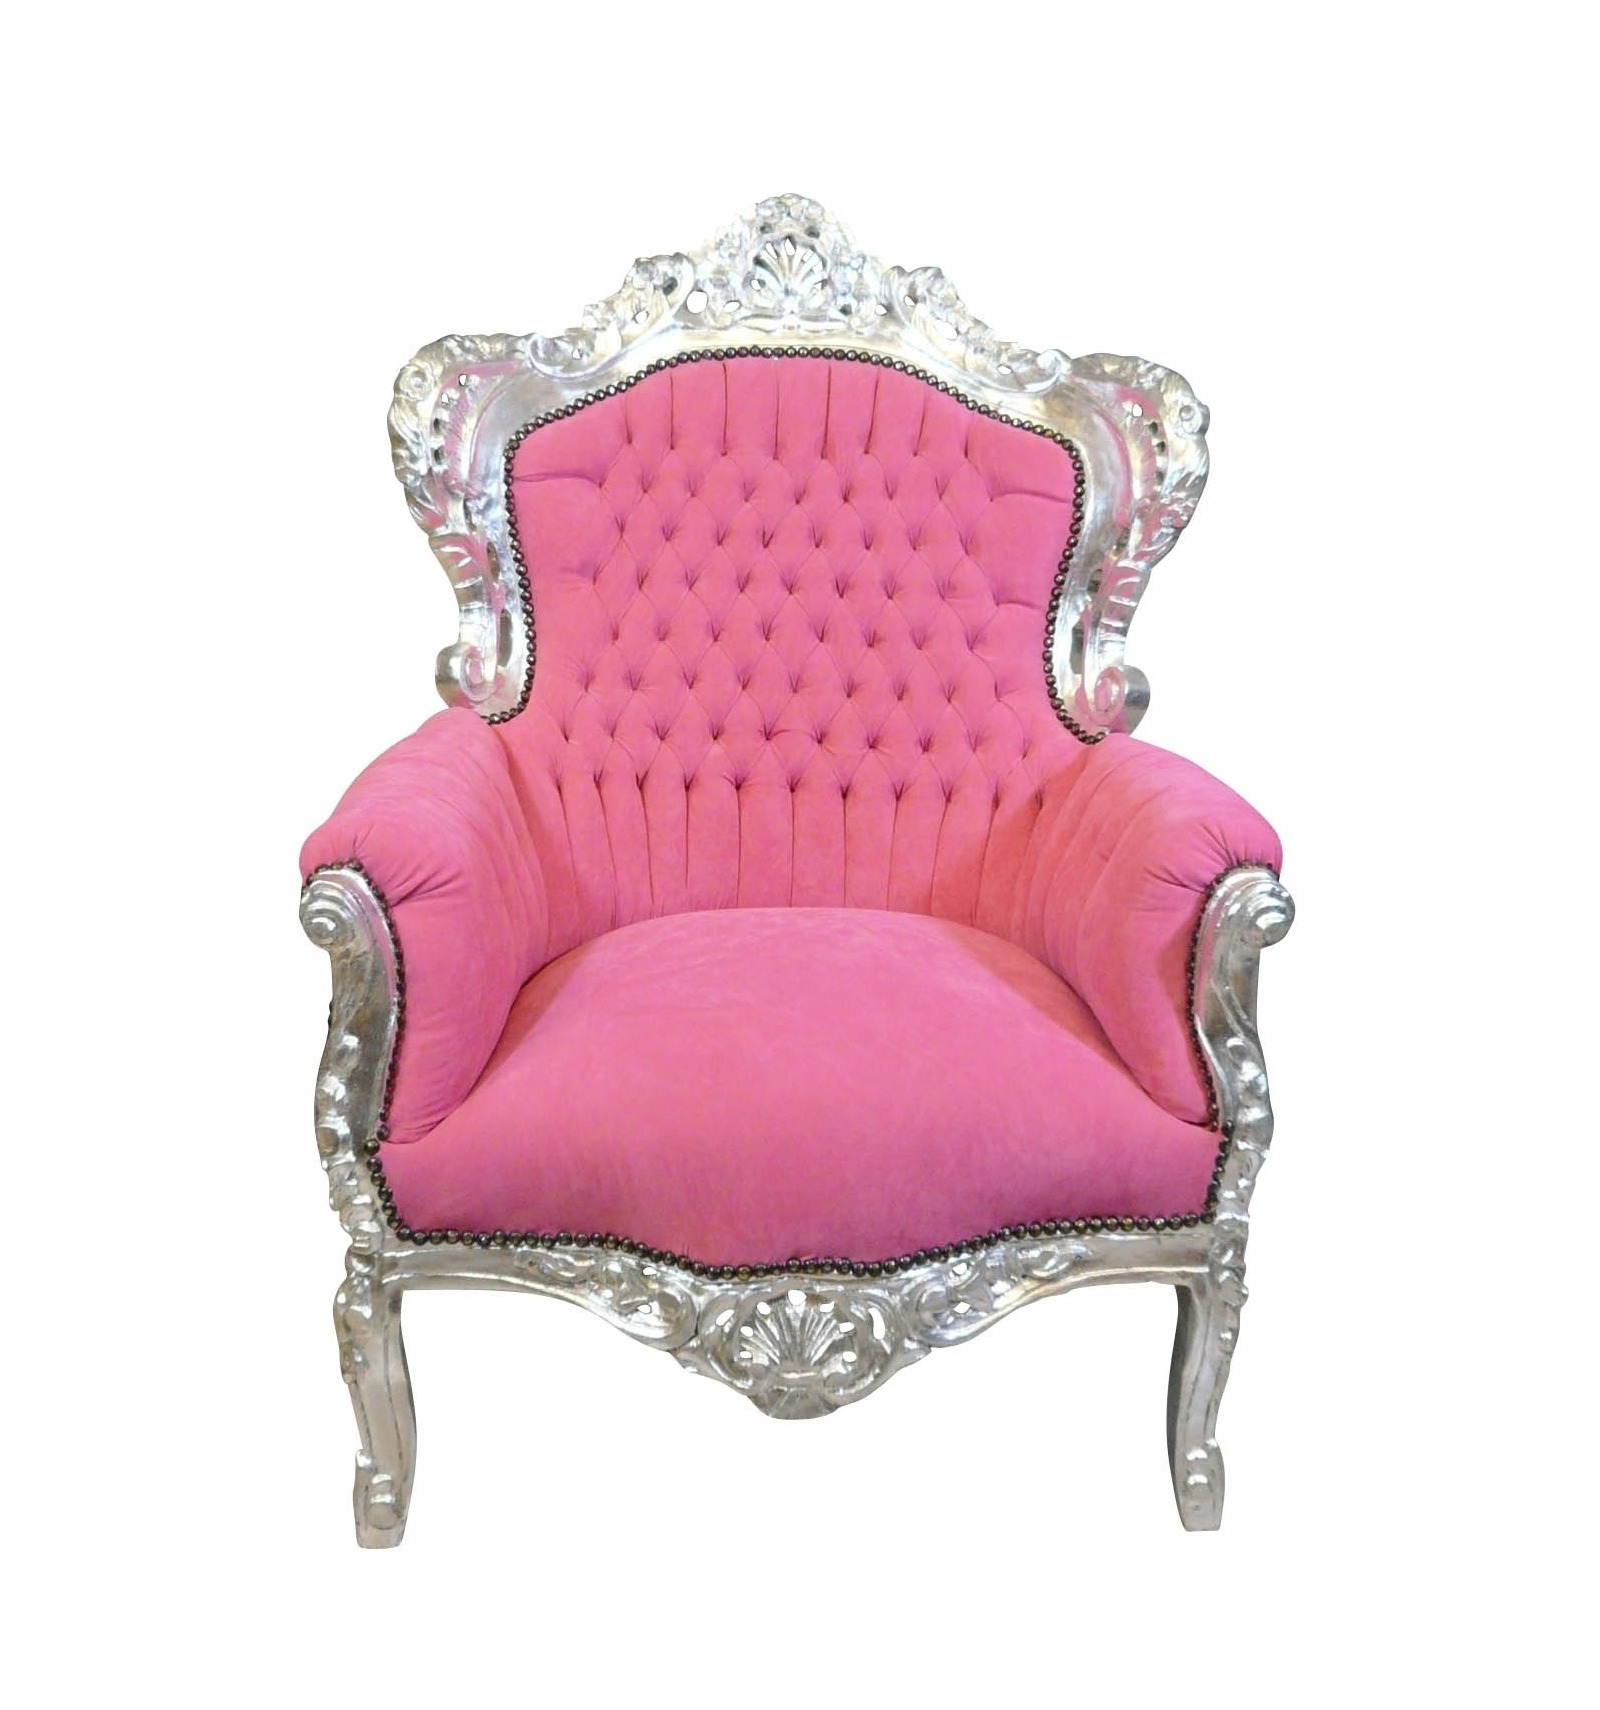 Fauteuil baroque rose chaise table commode et mobilier - Chaise baroque rose ...